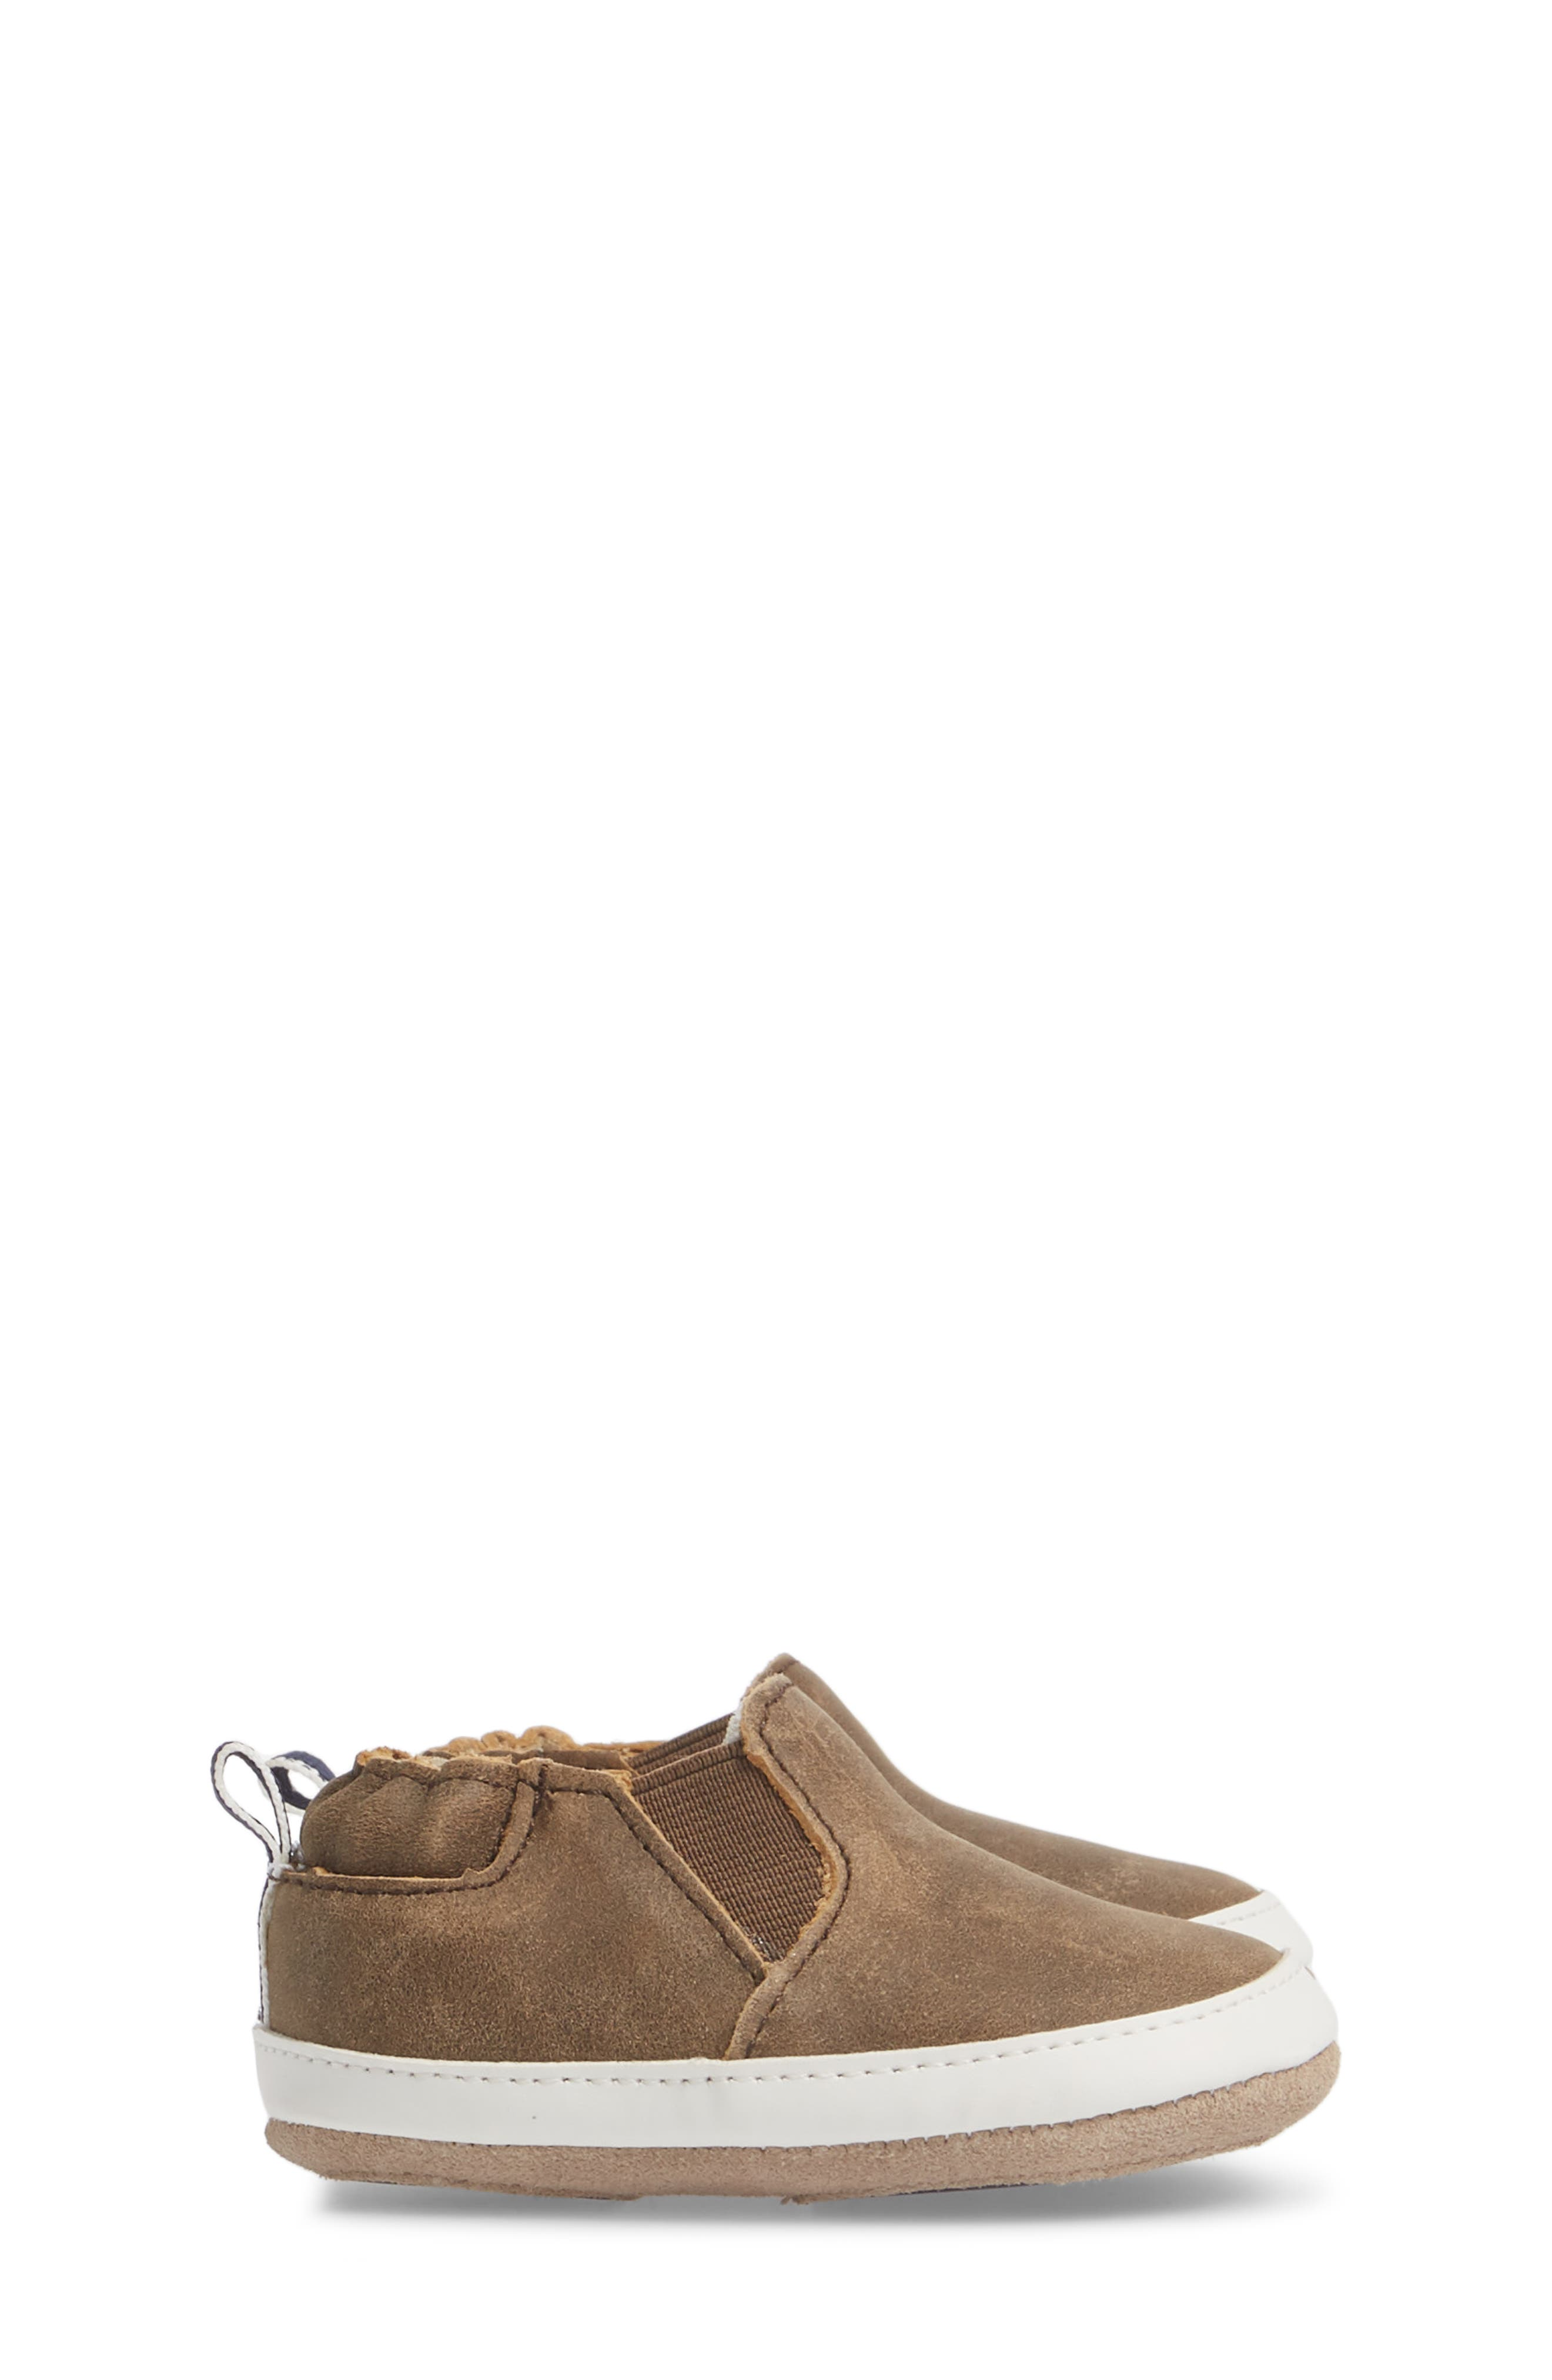 Lenny Loafer,                             Alternate thumbnail 5, color,                             Brown